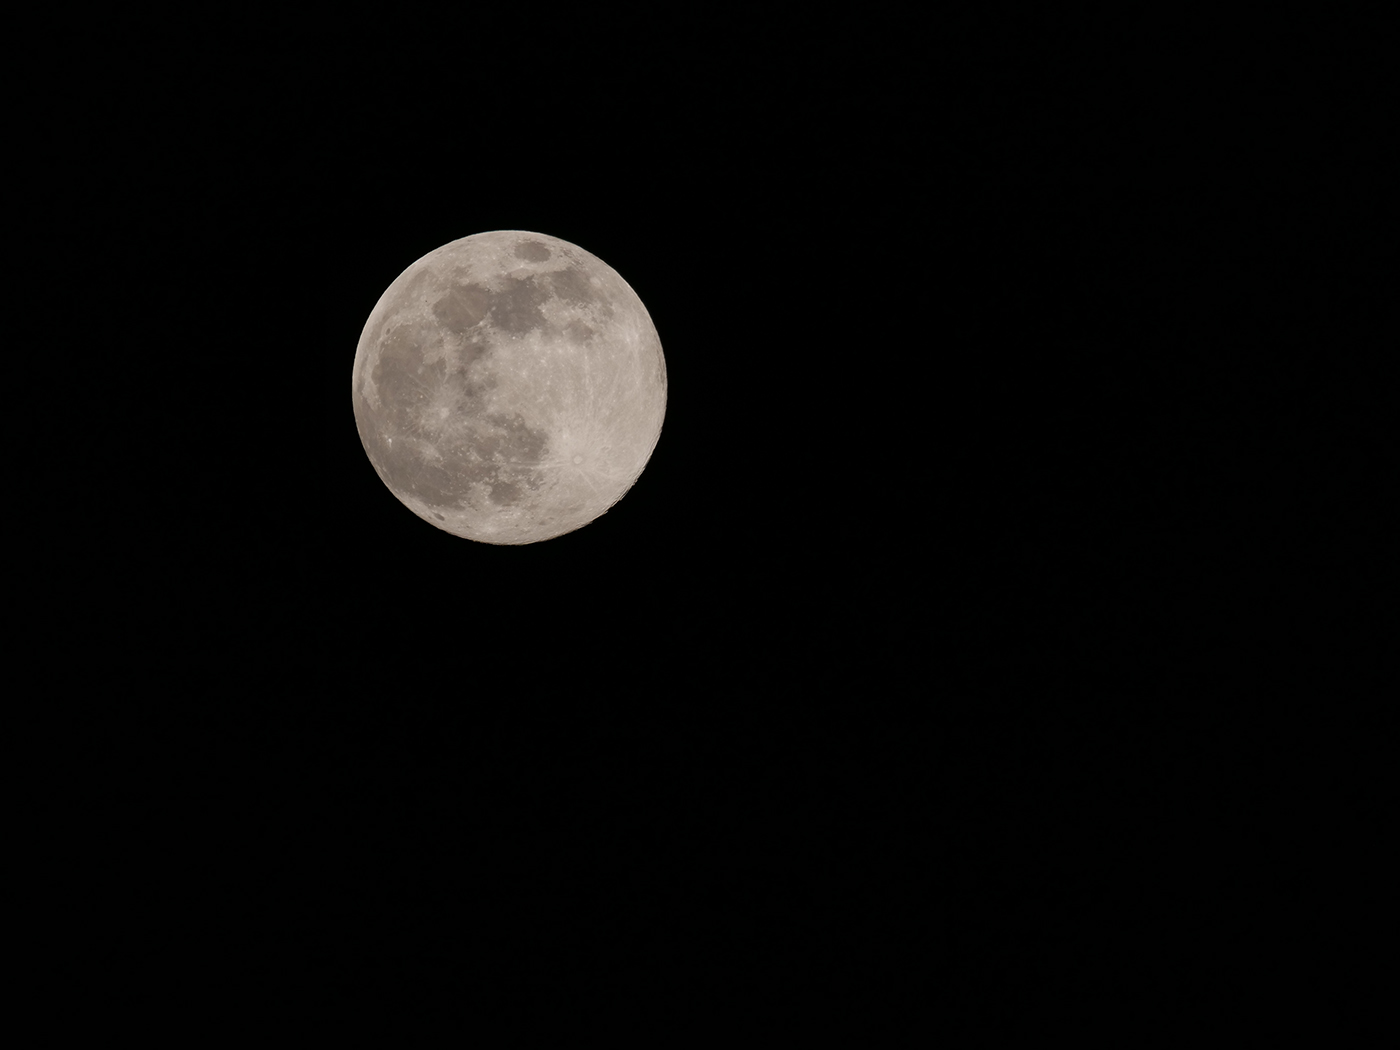 comment prendre des photos de la Super Lune